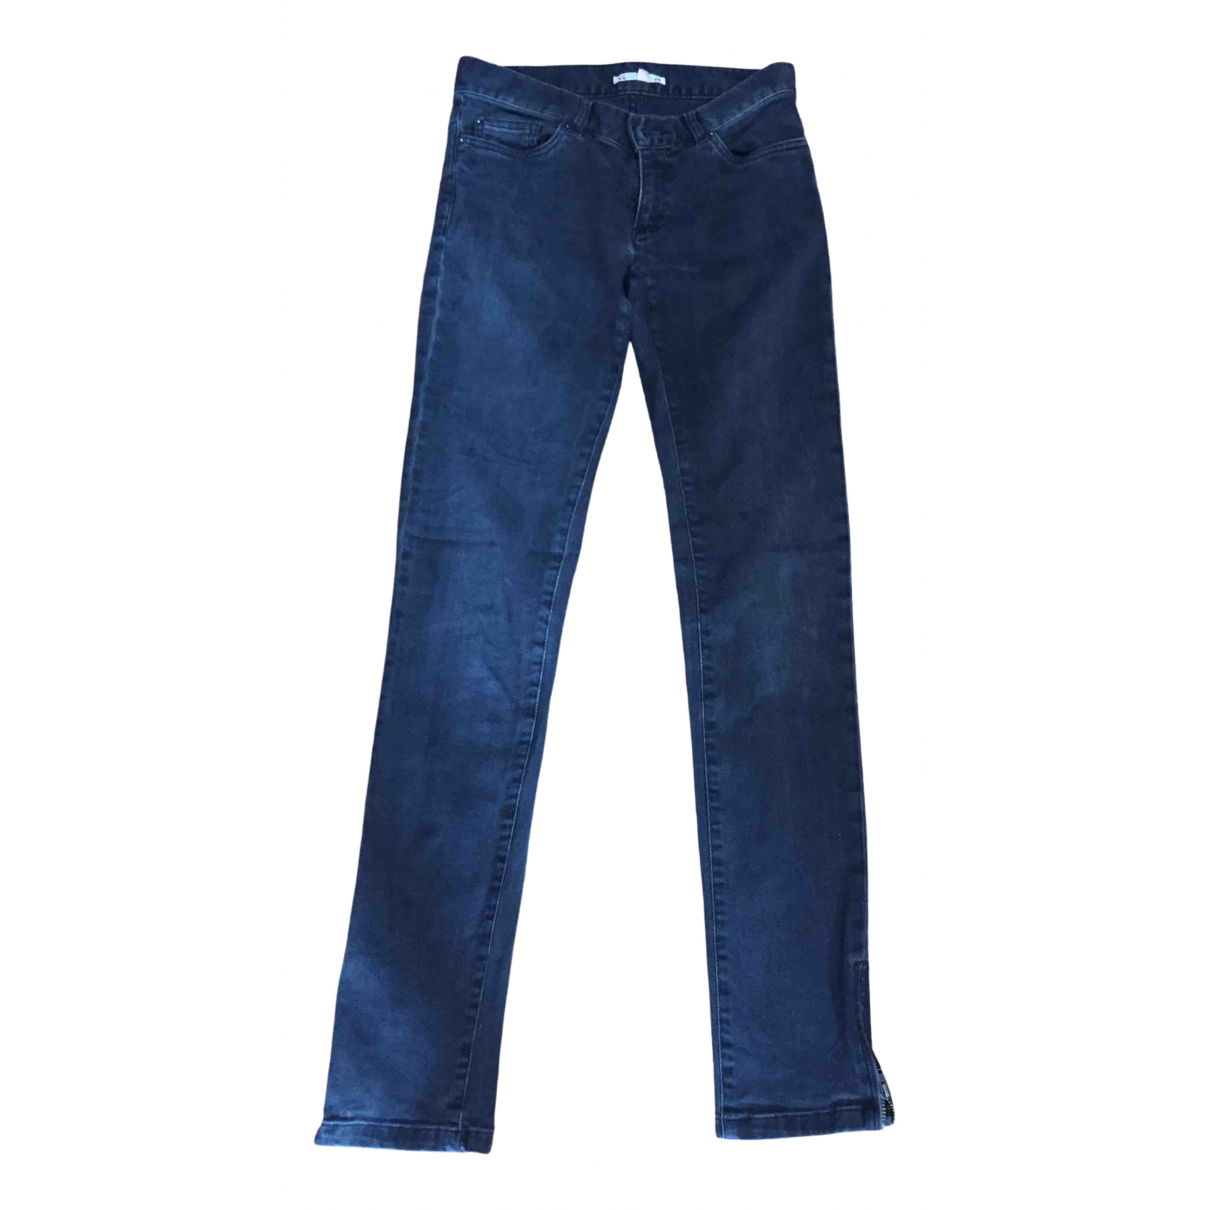 Bonpoint \N Black Denim - Jeans Trousers for Kids 12 years - XS FR